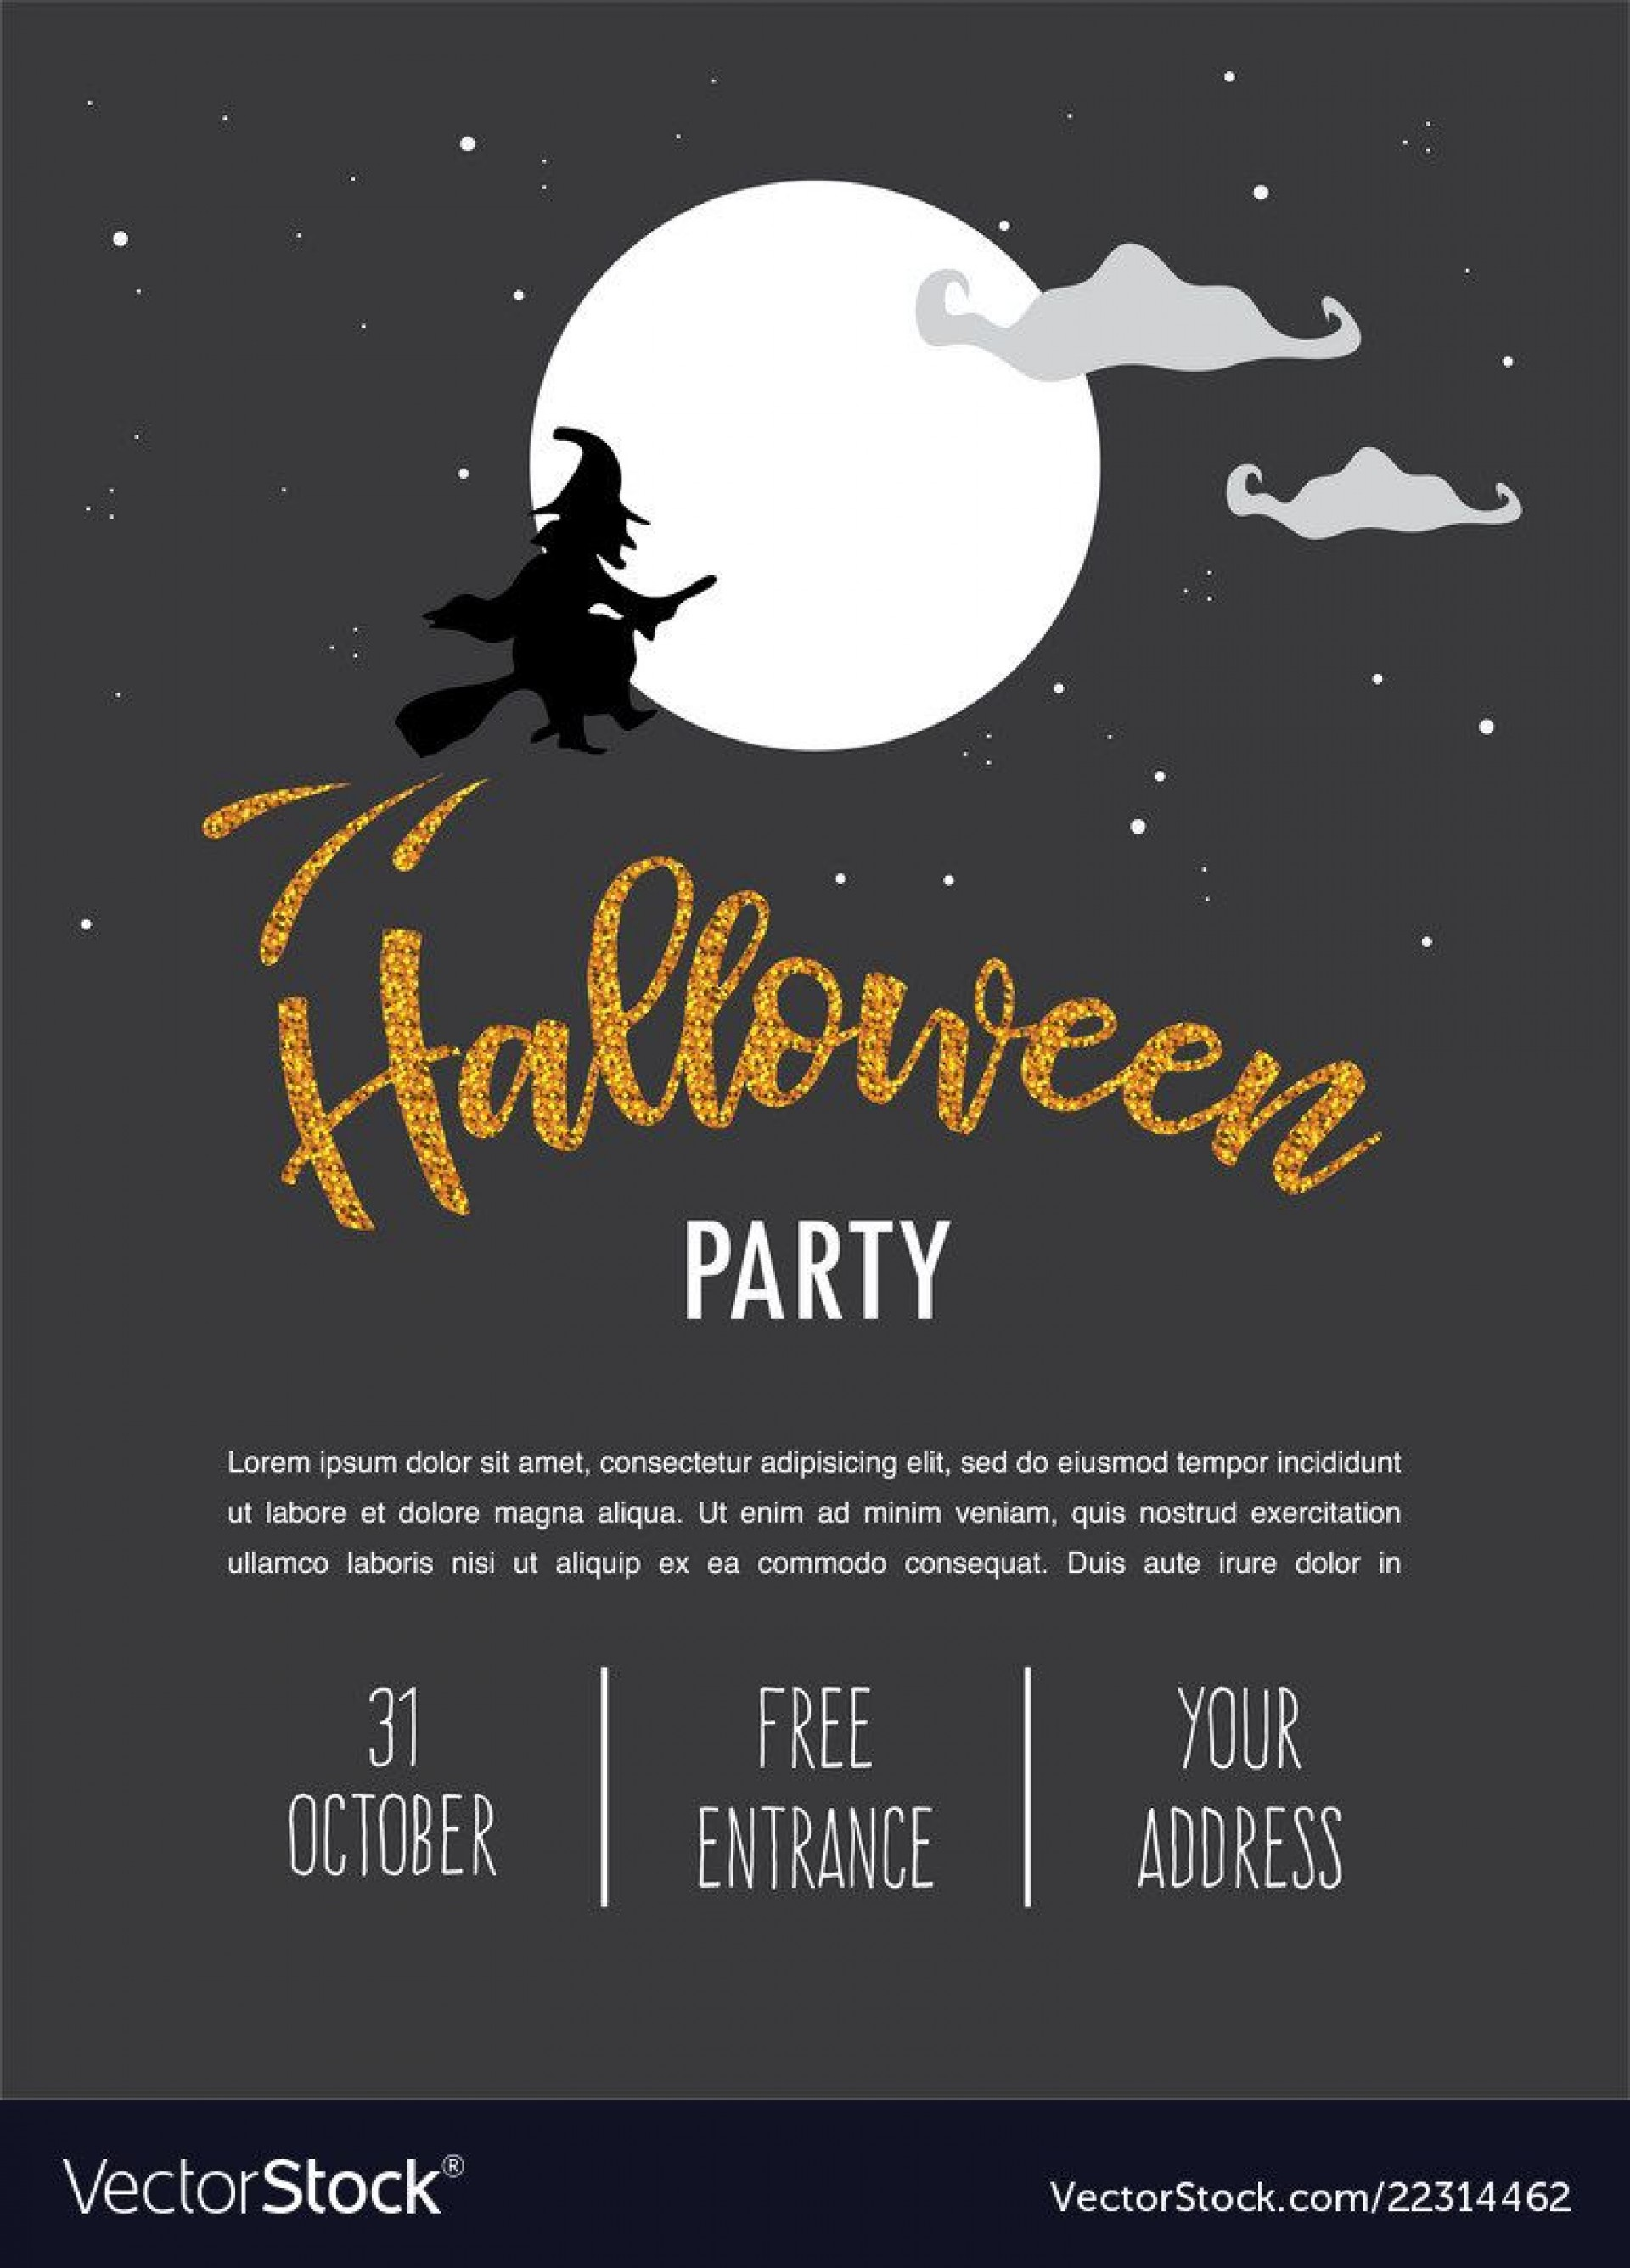 008 Awesome Halloween Party Invite Template High Definition  Spooky Invitation Free Printable Birthday Download1920